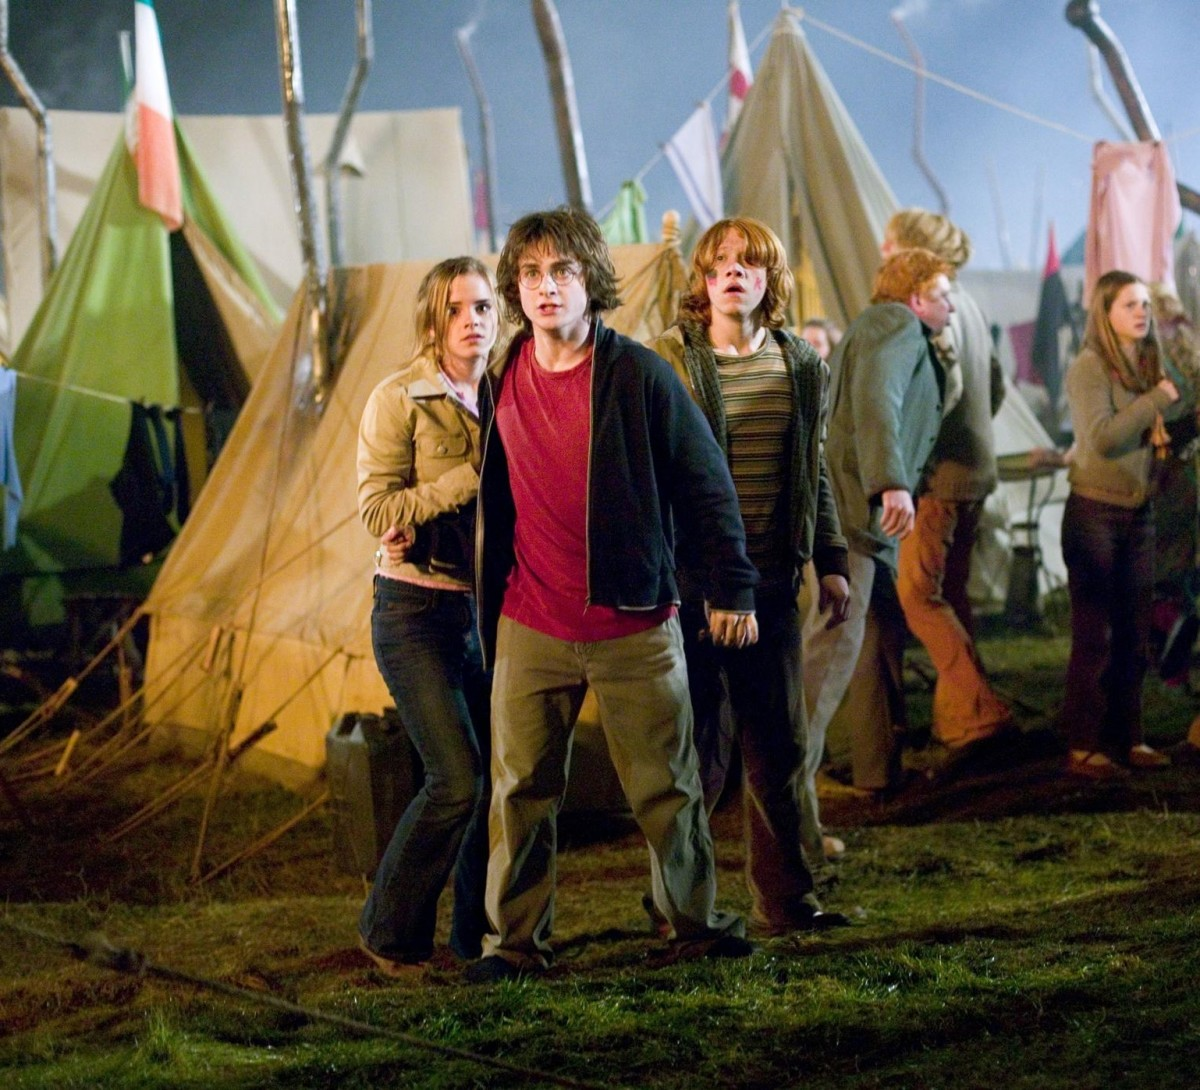 Hermione, Harry, and Ron witness Death Eaters launch an attack at the Quidditch World Cup